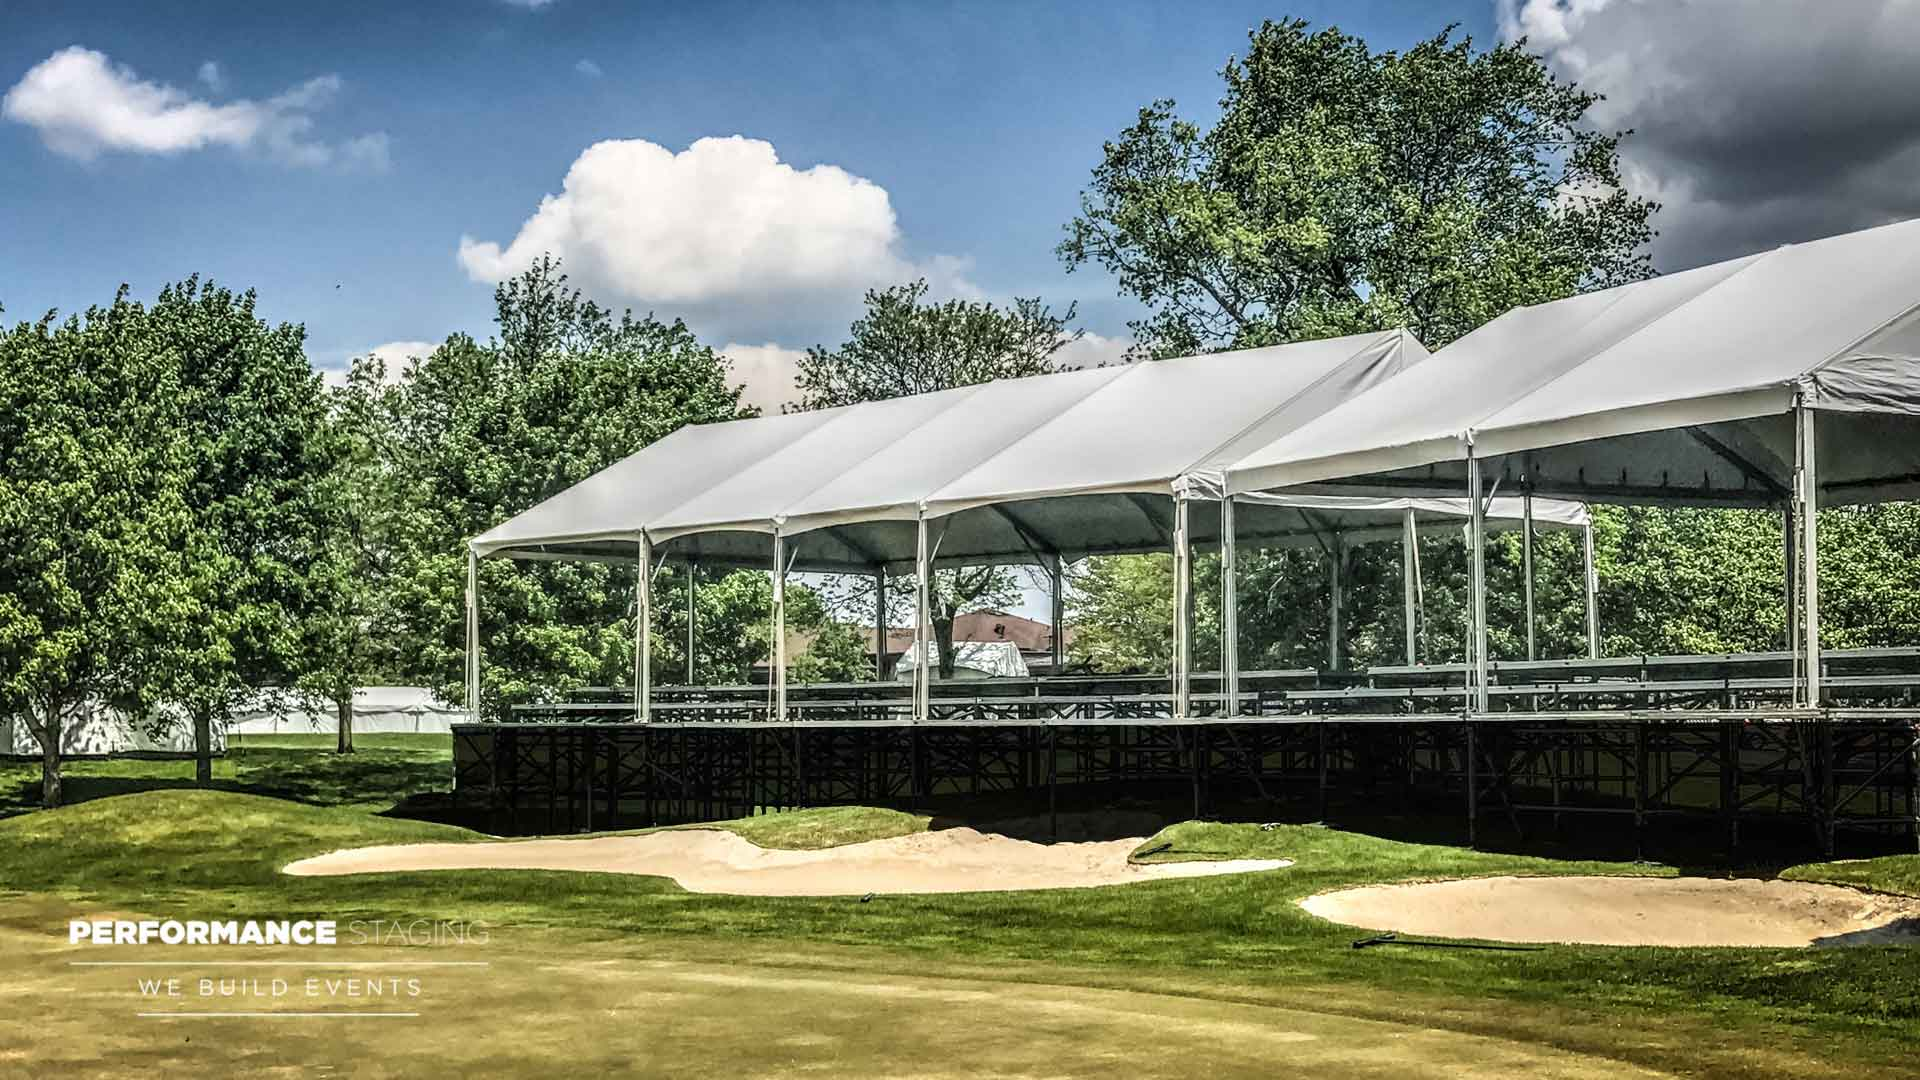 Video: Skybox Rental, Seating Risers And Grandstands at Travis Pointe Country Club For Professional Golf Tournament